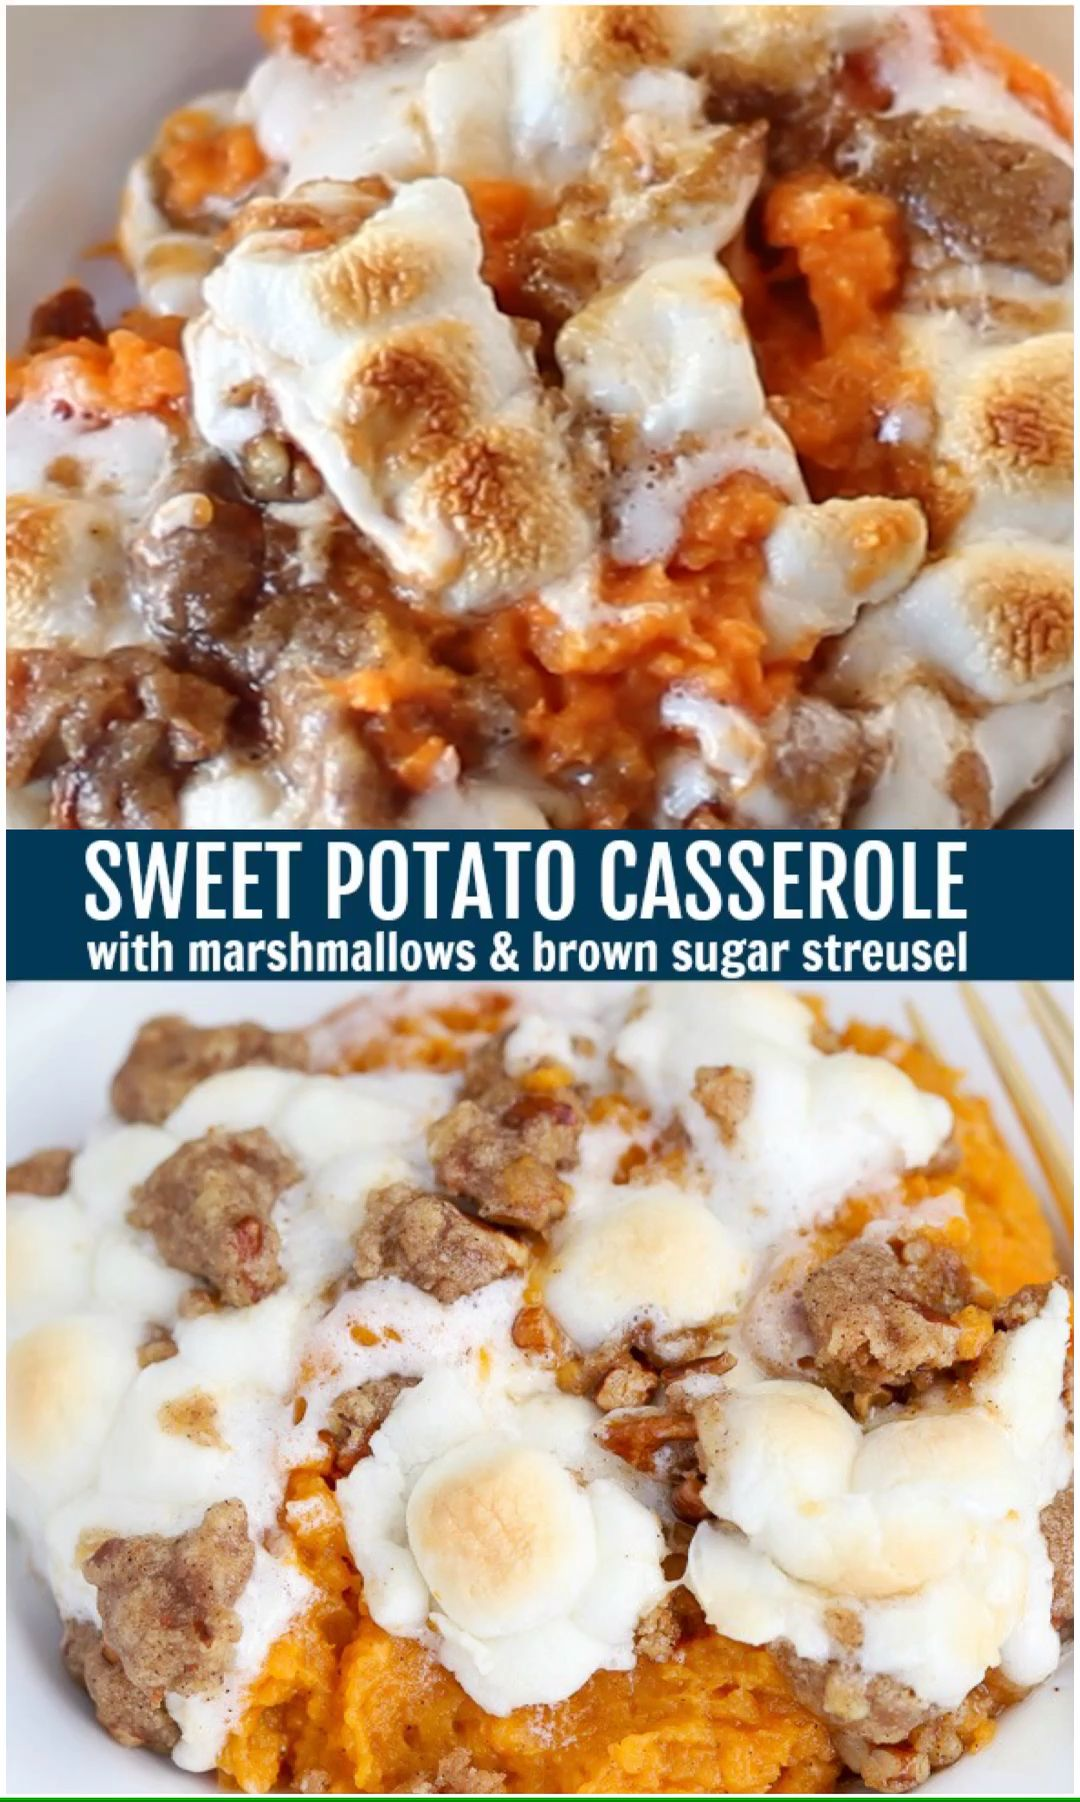 Sweet Potato Casserole with Marshmallows & Brown Sugar Streusel